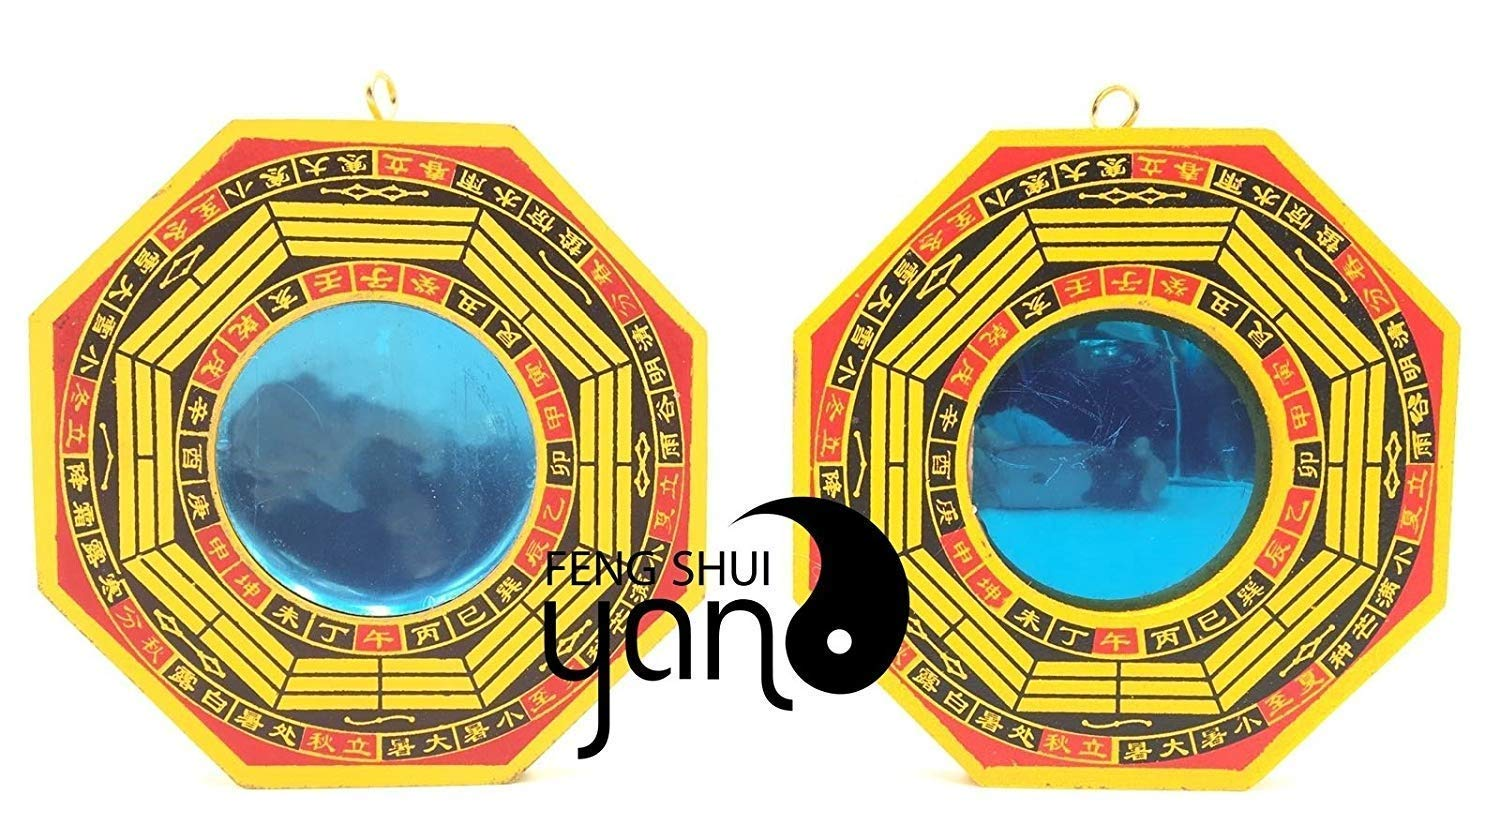 FengShuiYan 6 Inch Bagua Mirror Set of 2 for Protection; One Concave Mirror for Protection Against Passive Negative Energy & One Convex Mirror for Protection Against Active Harmful Energy